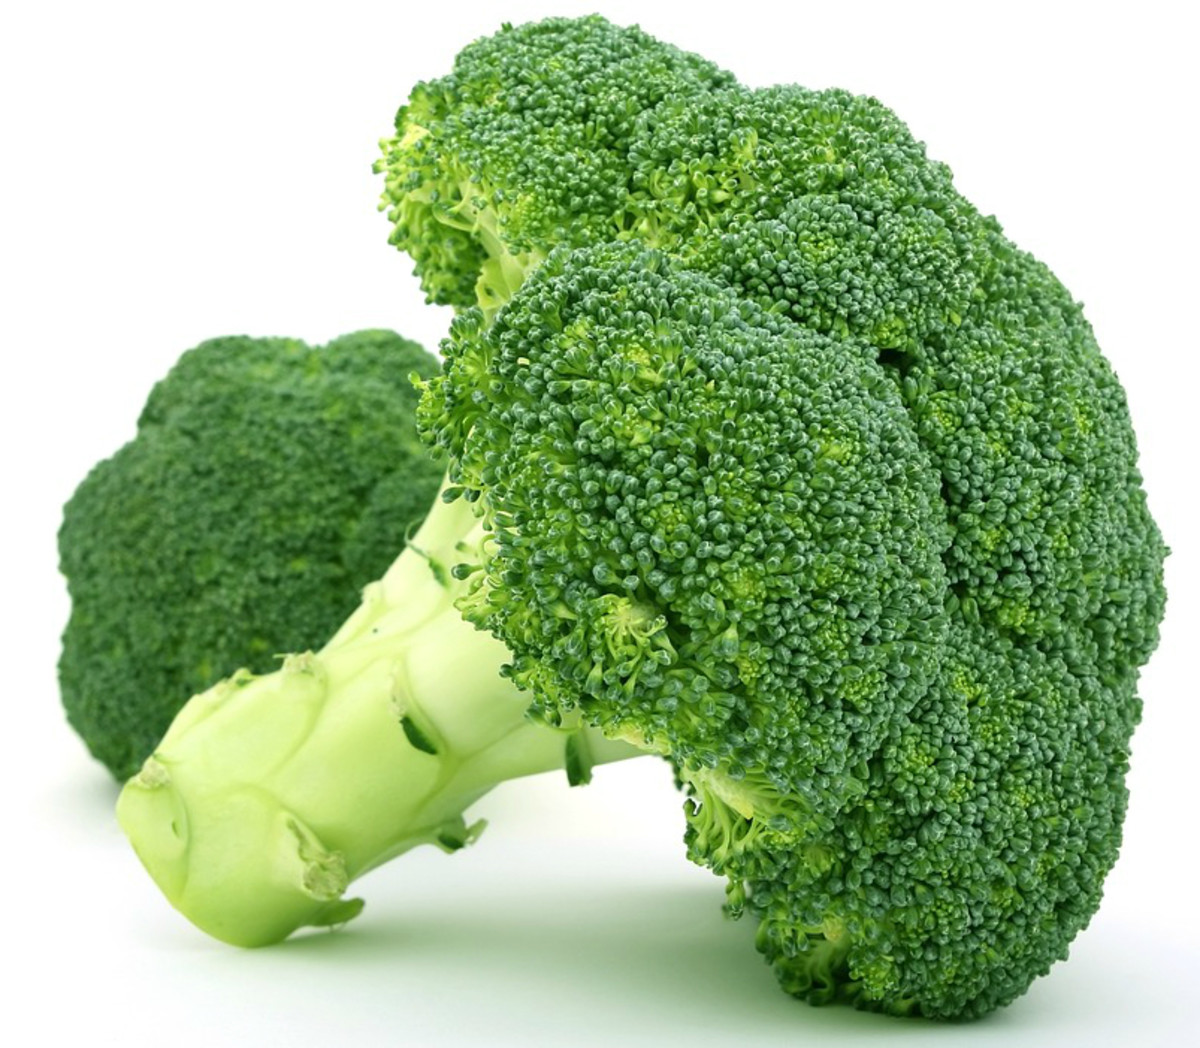 Broccoli - My personal research strongly suggests broccoli is the number one food for achieving the cleanest poop